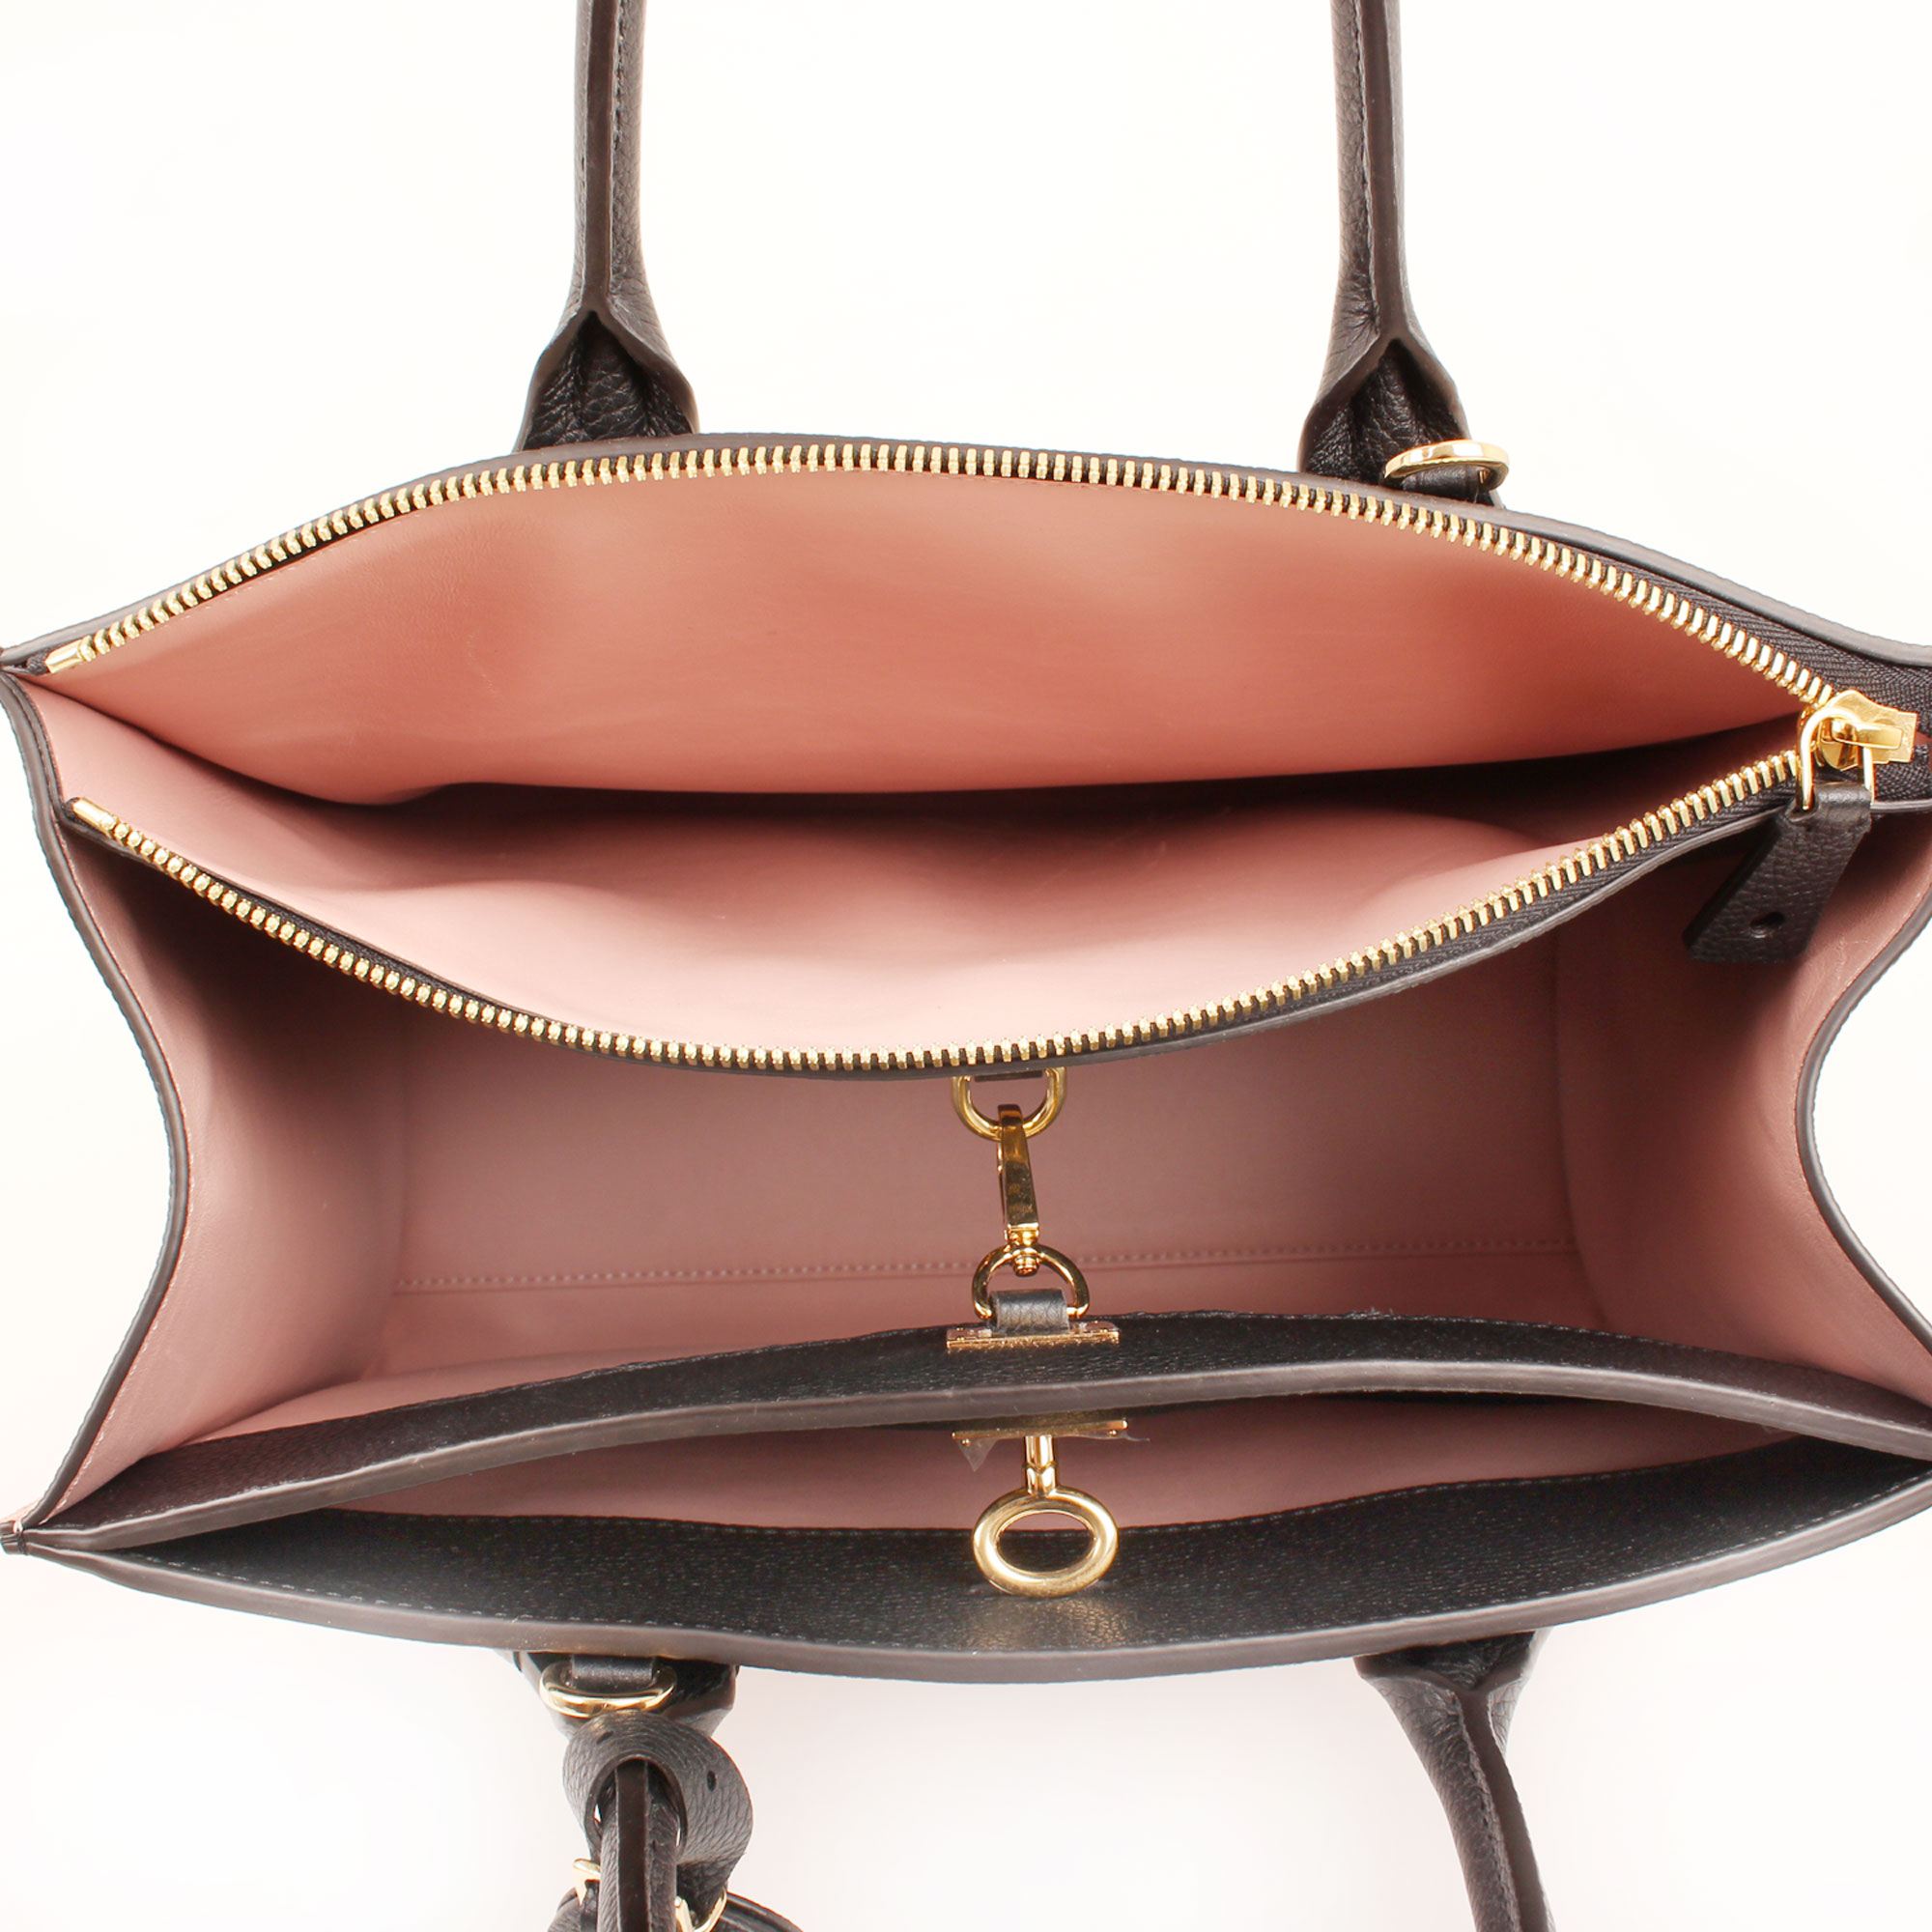 Imagen del interior del bolso louis vuitton city steamer mm magnolia